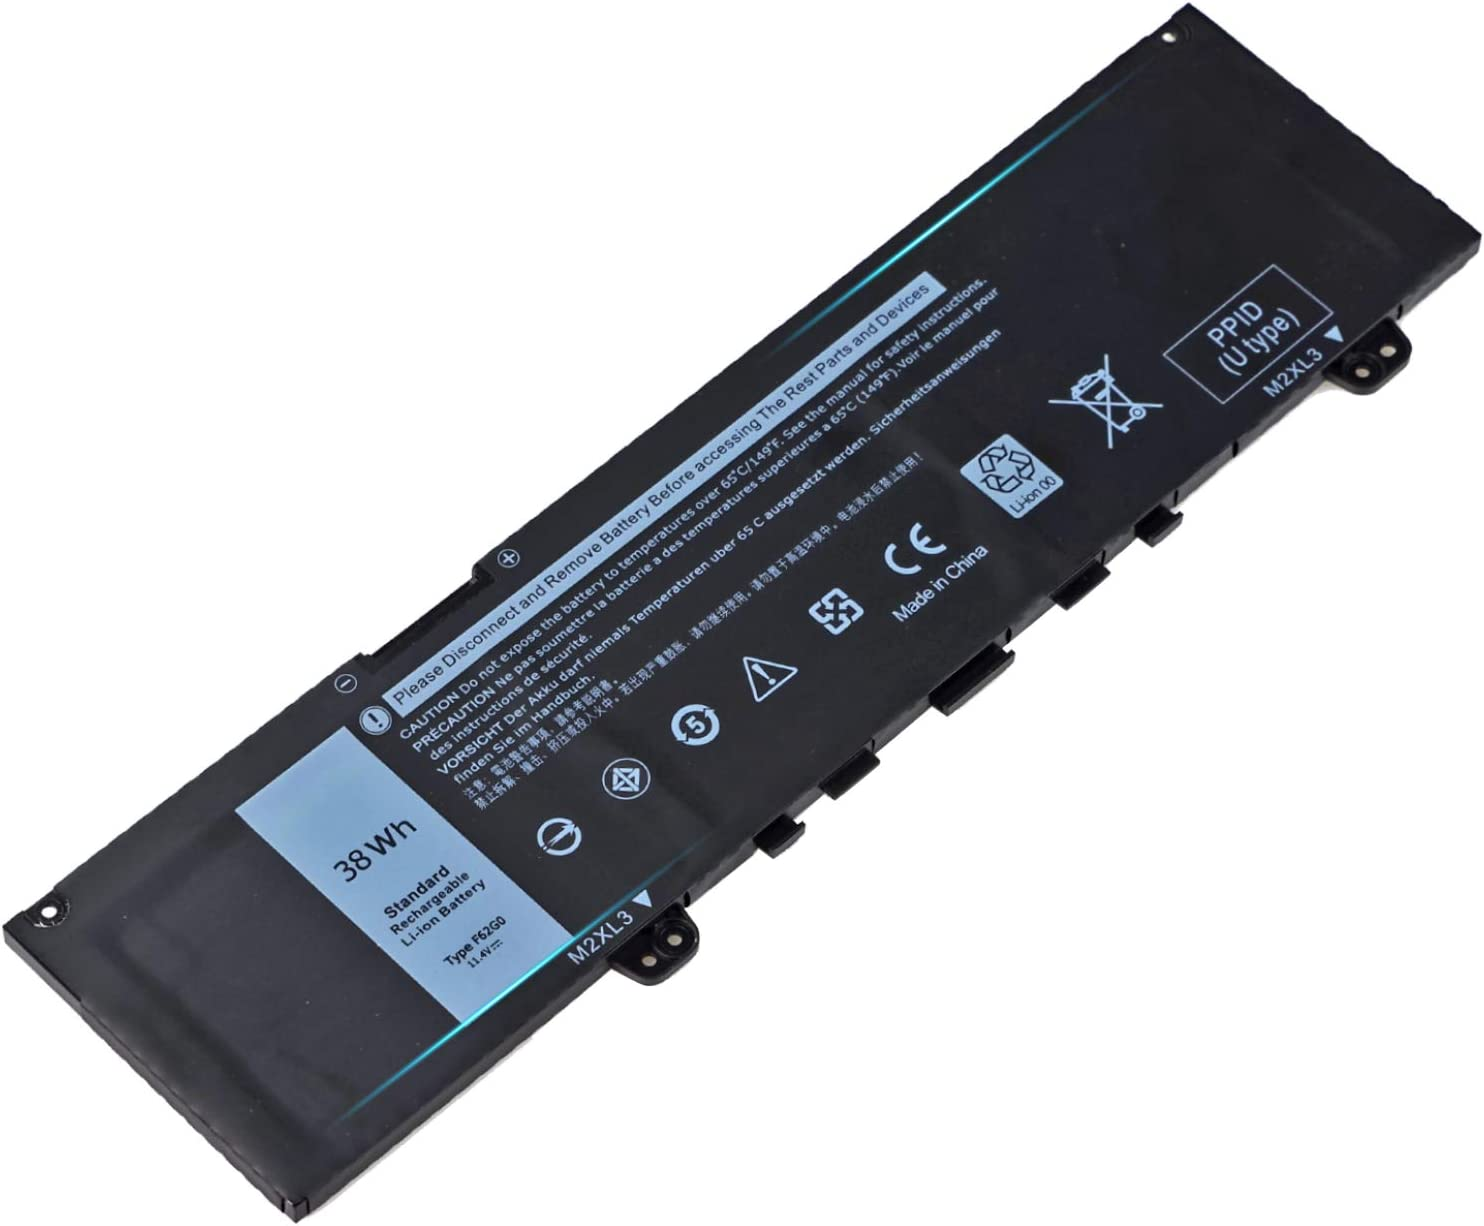 38Wh F62G0 Battery for Dell Inspiron 13 7000 7373 7386 2-in-1 7370 7380 5370 P83G P87G P91G P83G001 P83G002 P87G001 Replacement with Vostro 13 5370 039DY5 0F62G0 RPJC3 0RPJC3 F62GO-11.4V